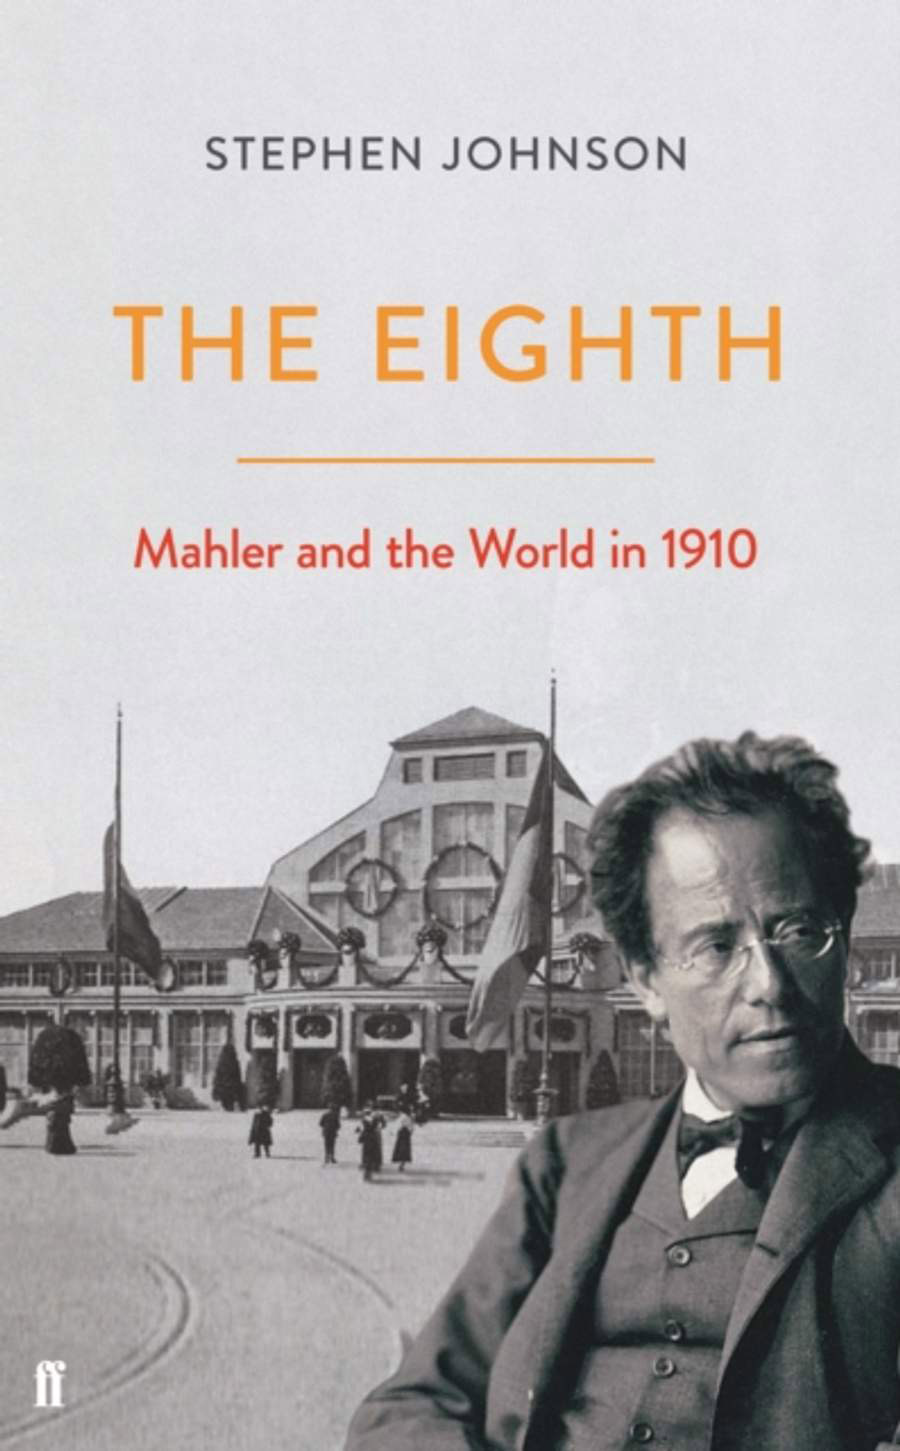 The Eighth: Mahler and the World in 1910